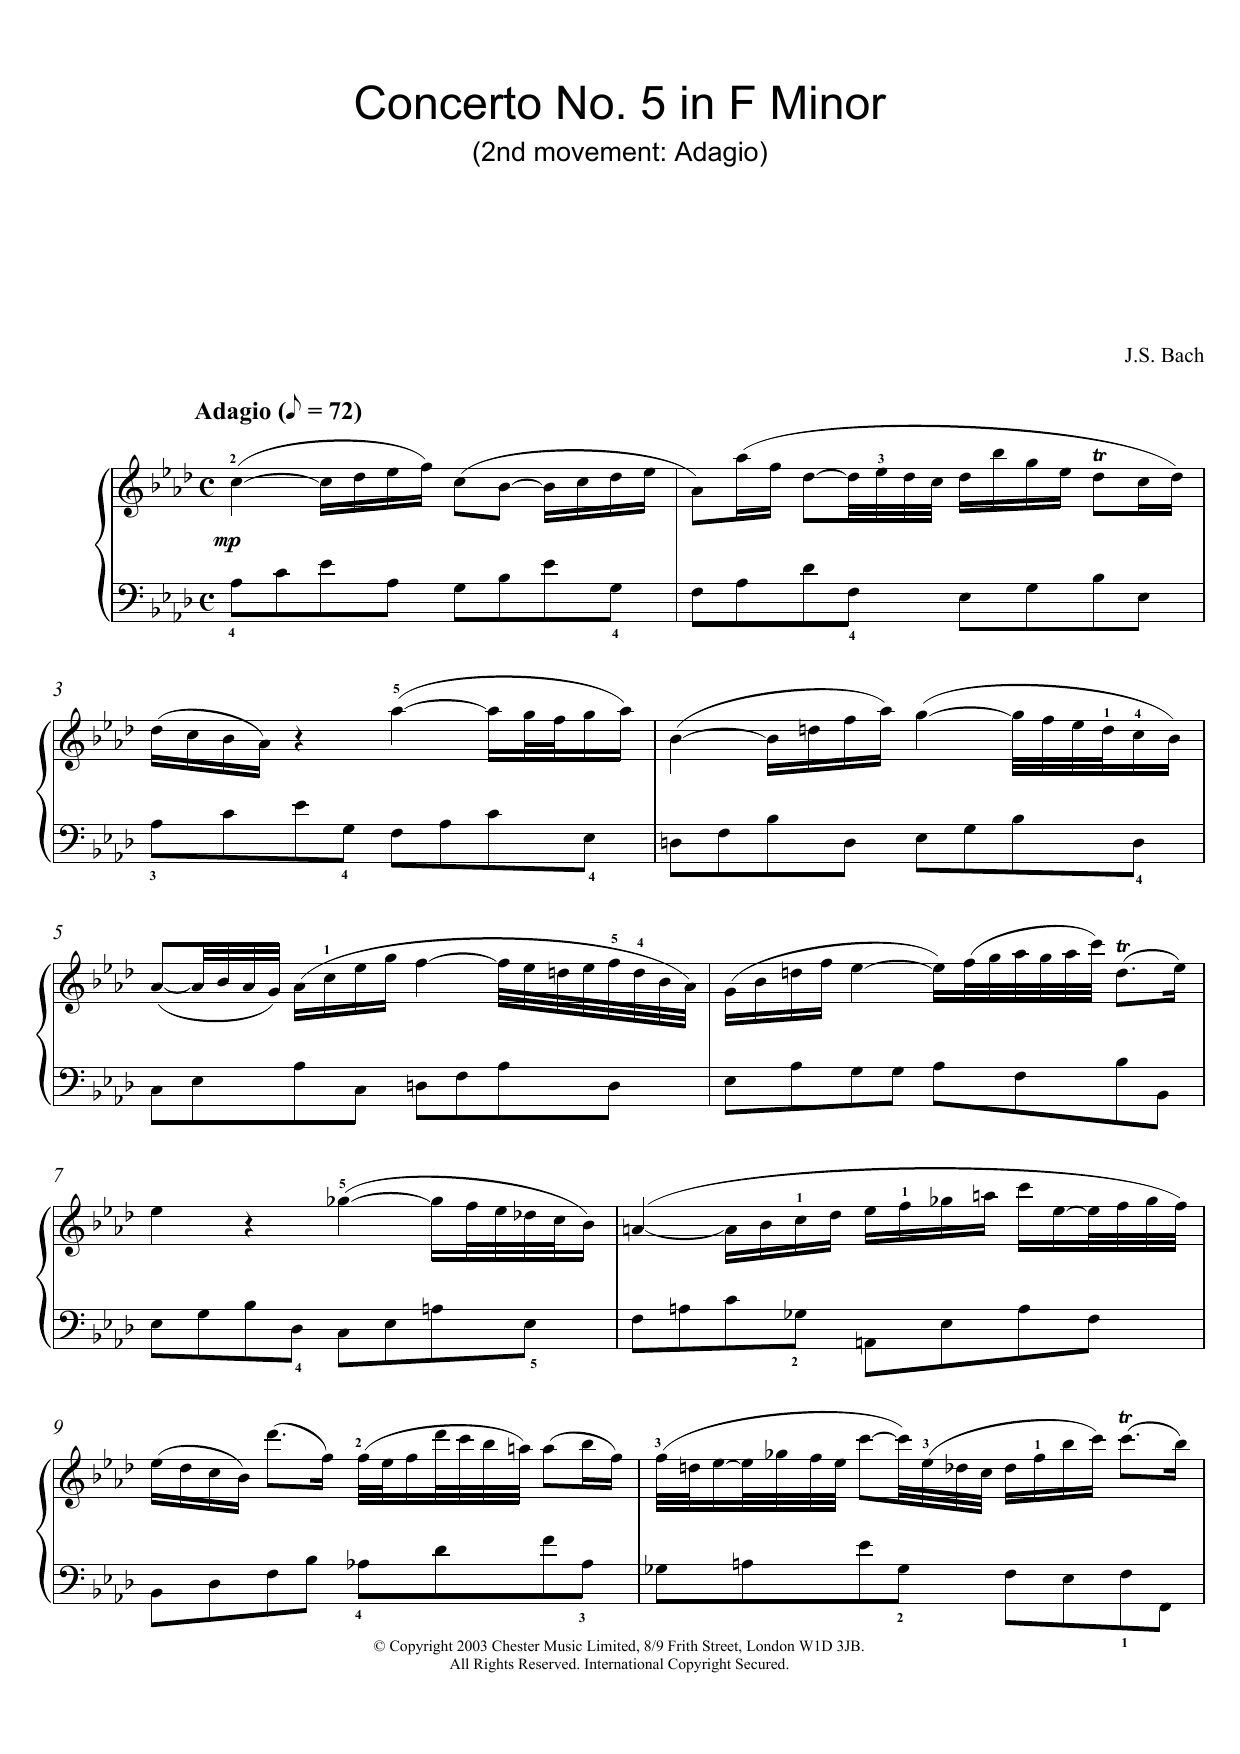 J.S. Bach Piano Concerto No. 5 in F Minor (2nd movement: Adagio) sheet music preview music notes and score for Piano including 2 page(s)